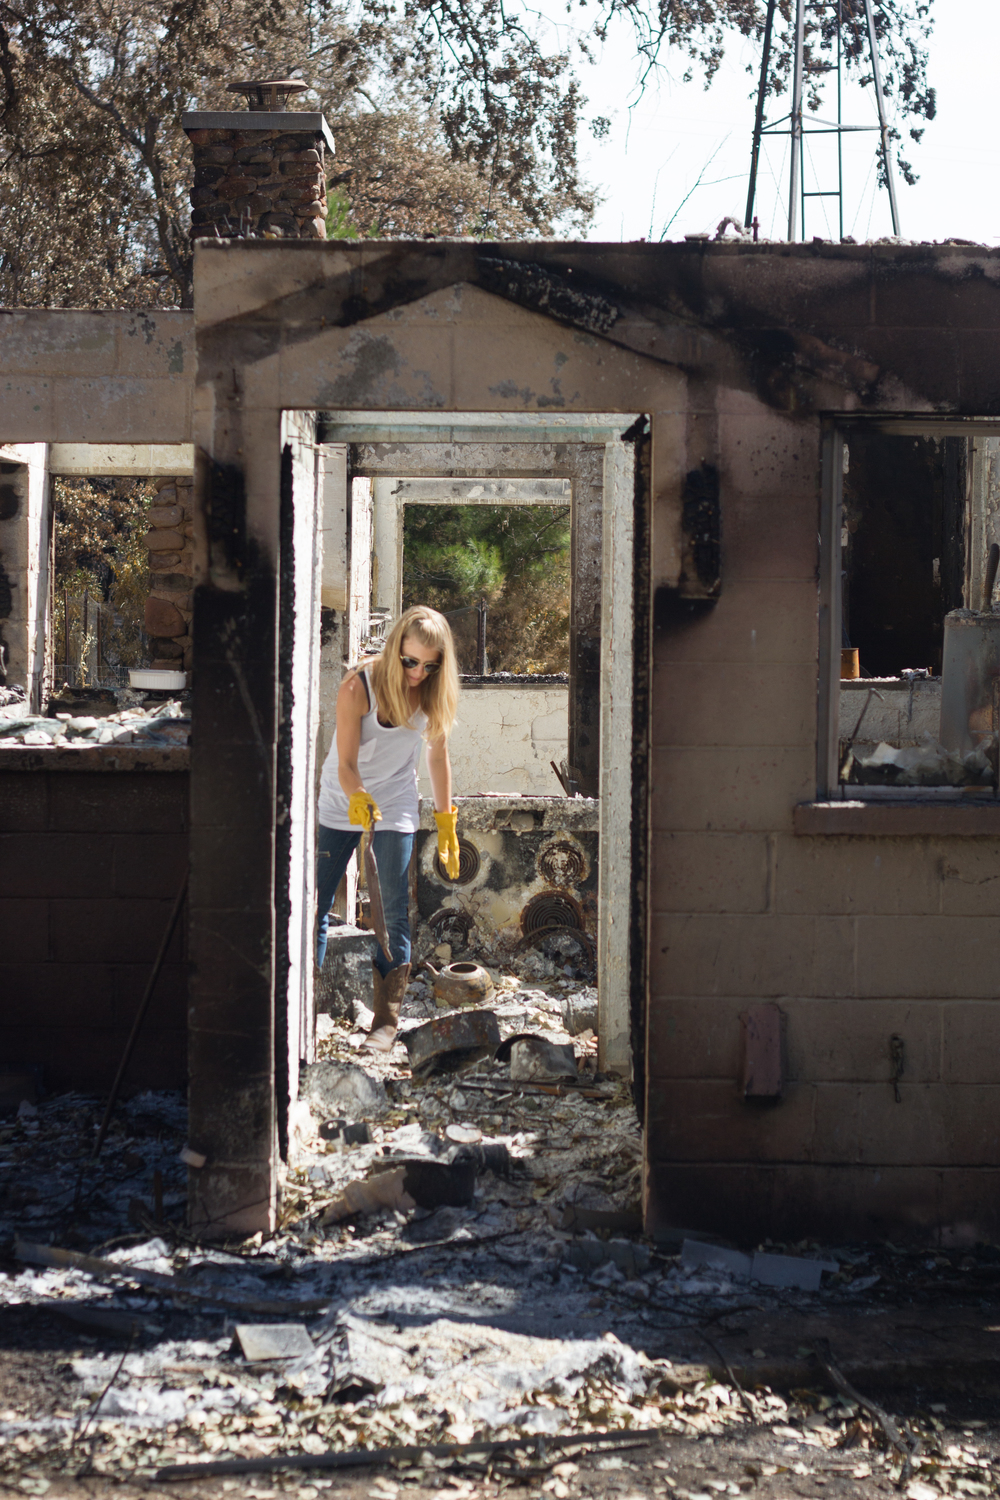 Sifting through rubble at a home destroyed in The Valley Fire